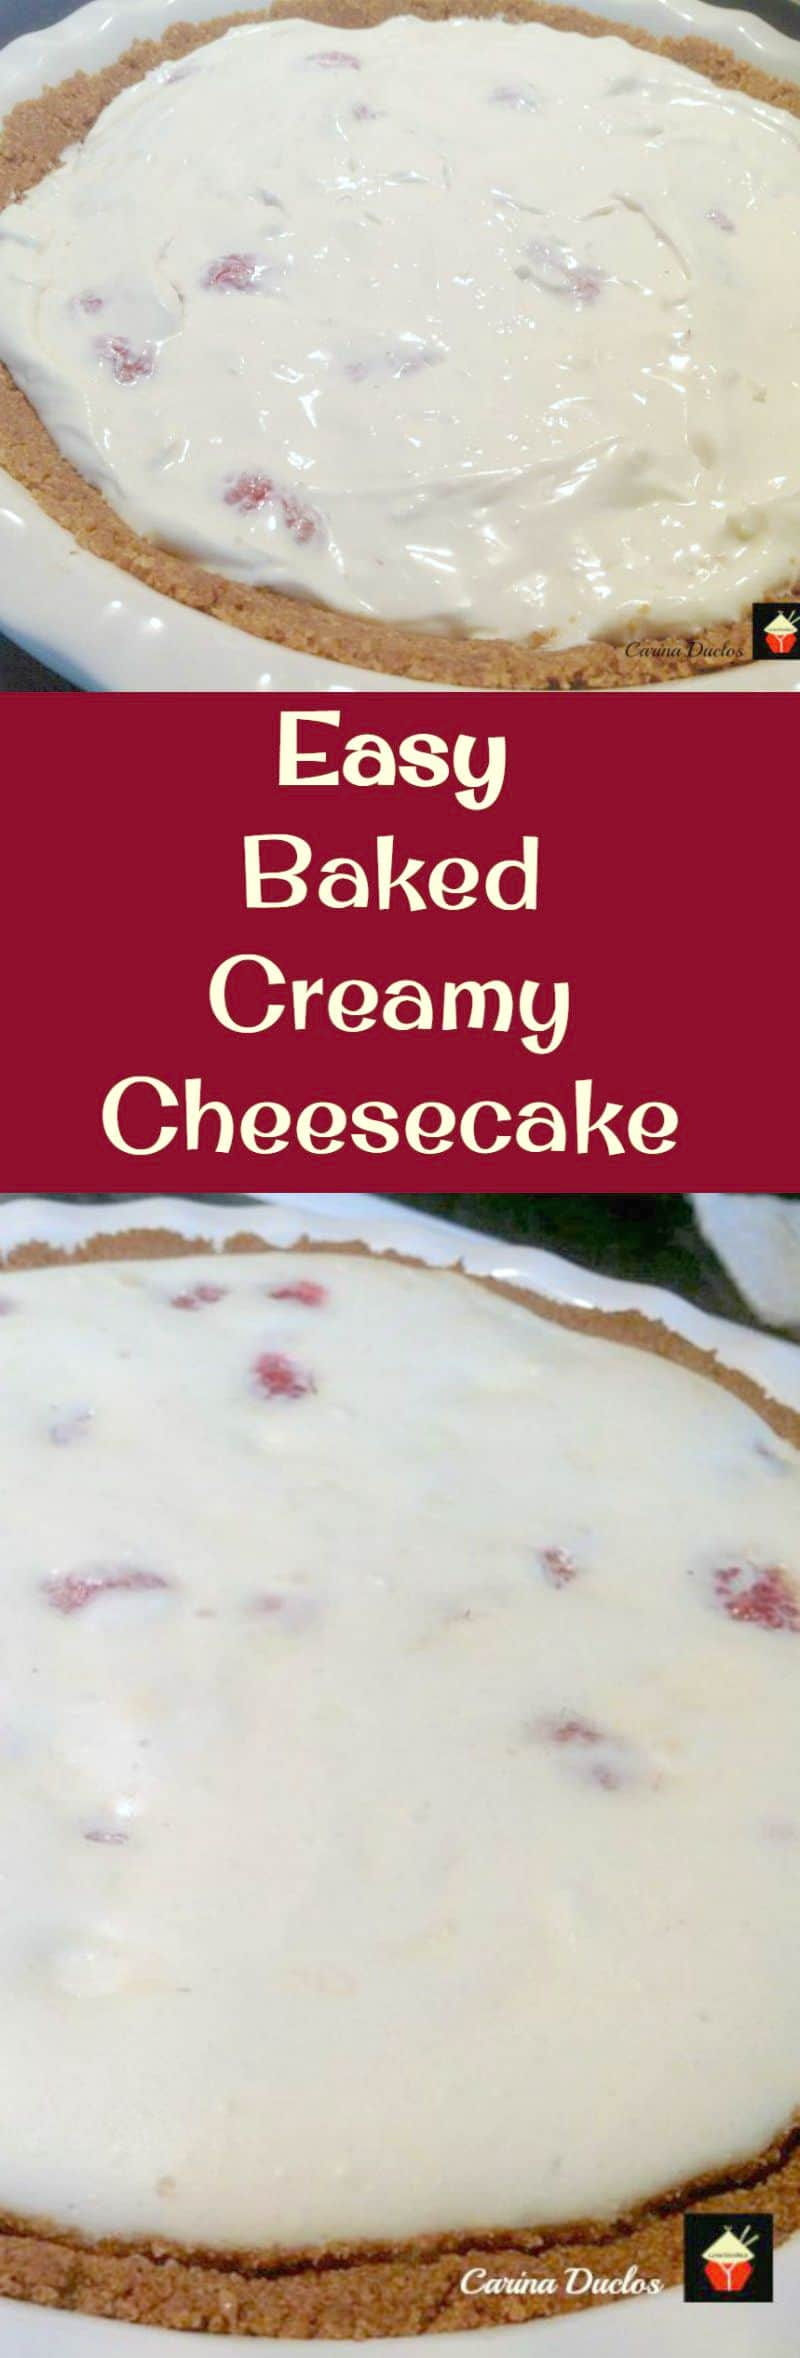 Easy Baked Creamy Cheesecake A Simple And Straightforward Recipe For A Baked Cheesecake With No